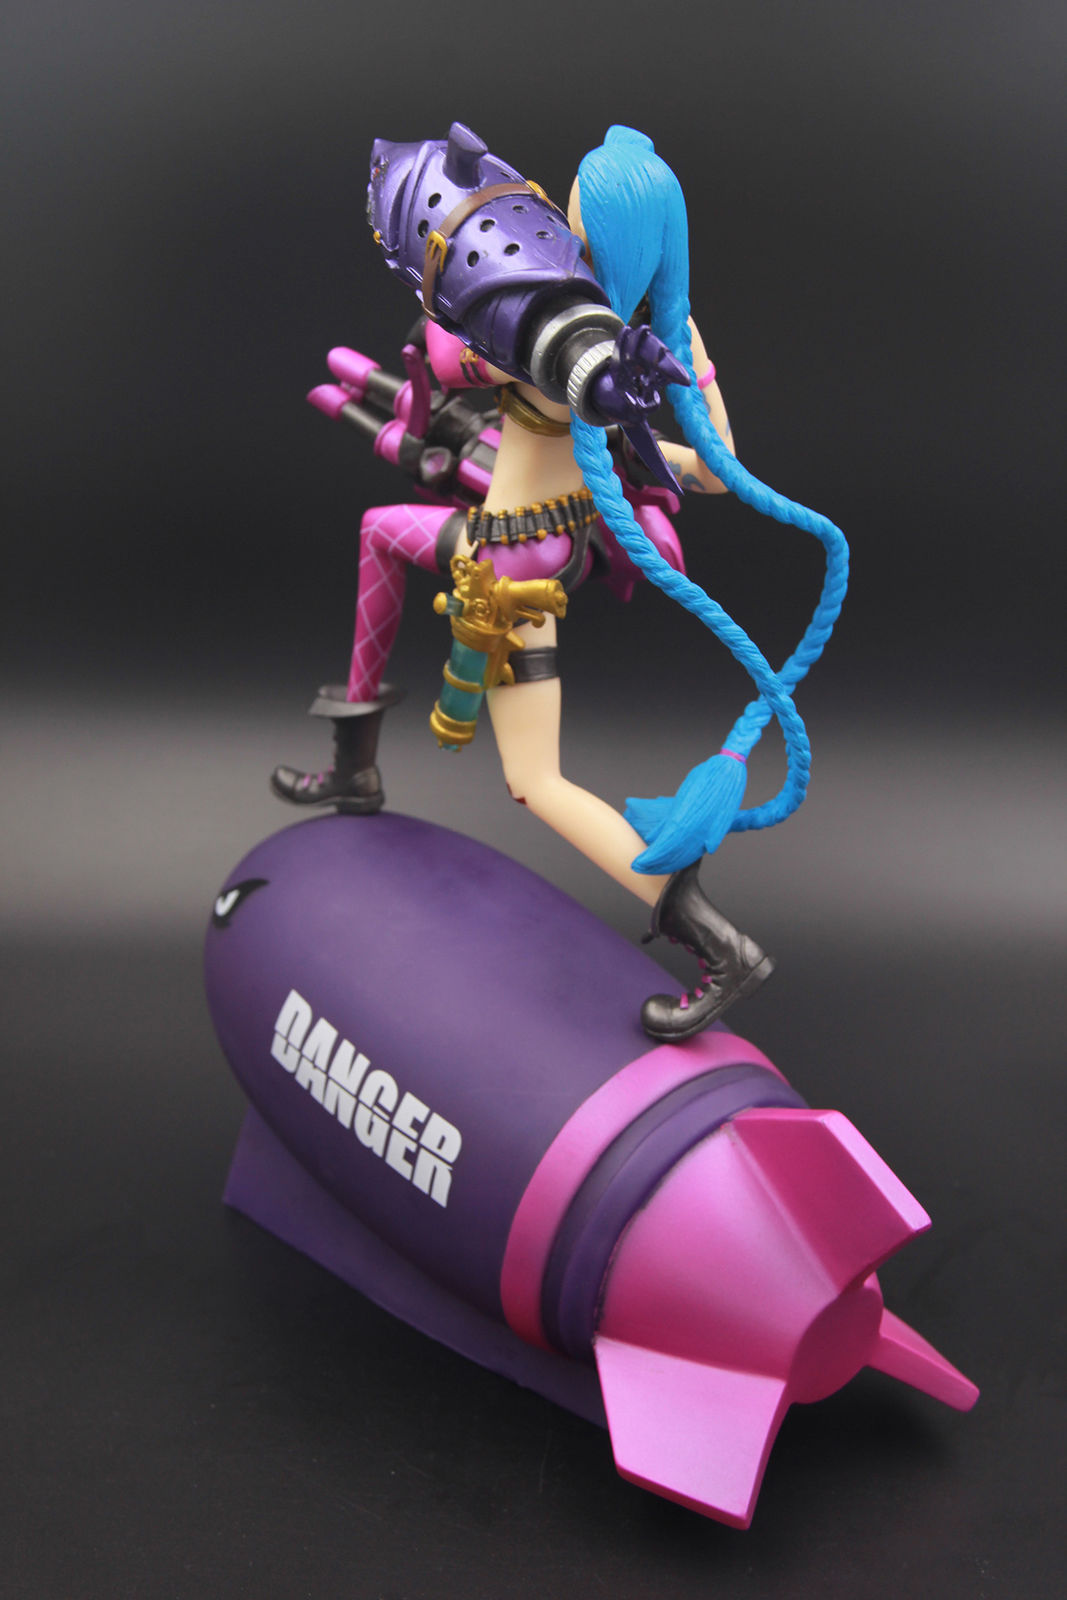 LOL League Marksman Loose Cannon Jinx Rocket Figure Statue Model New Anime Figure Collectible Model Toy Of Legends 1